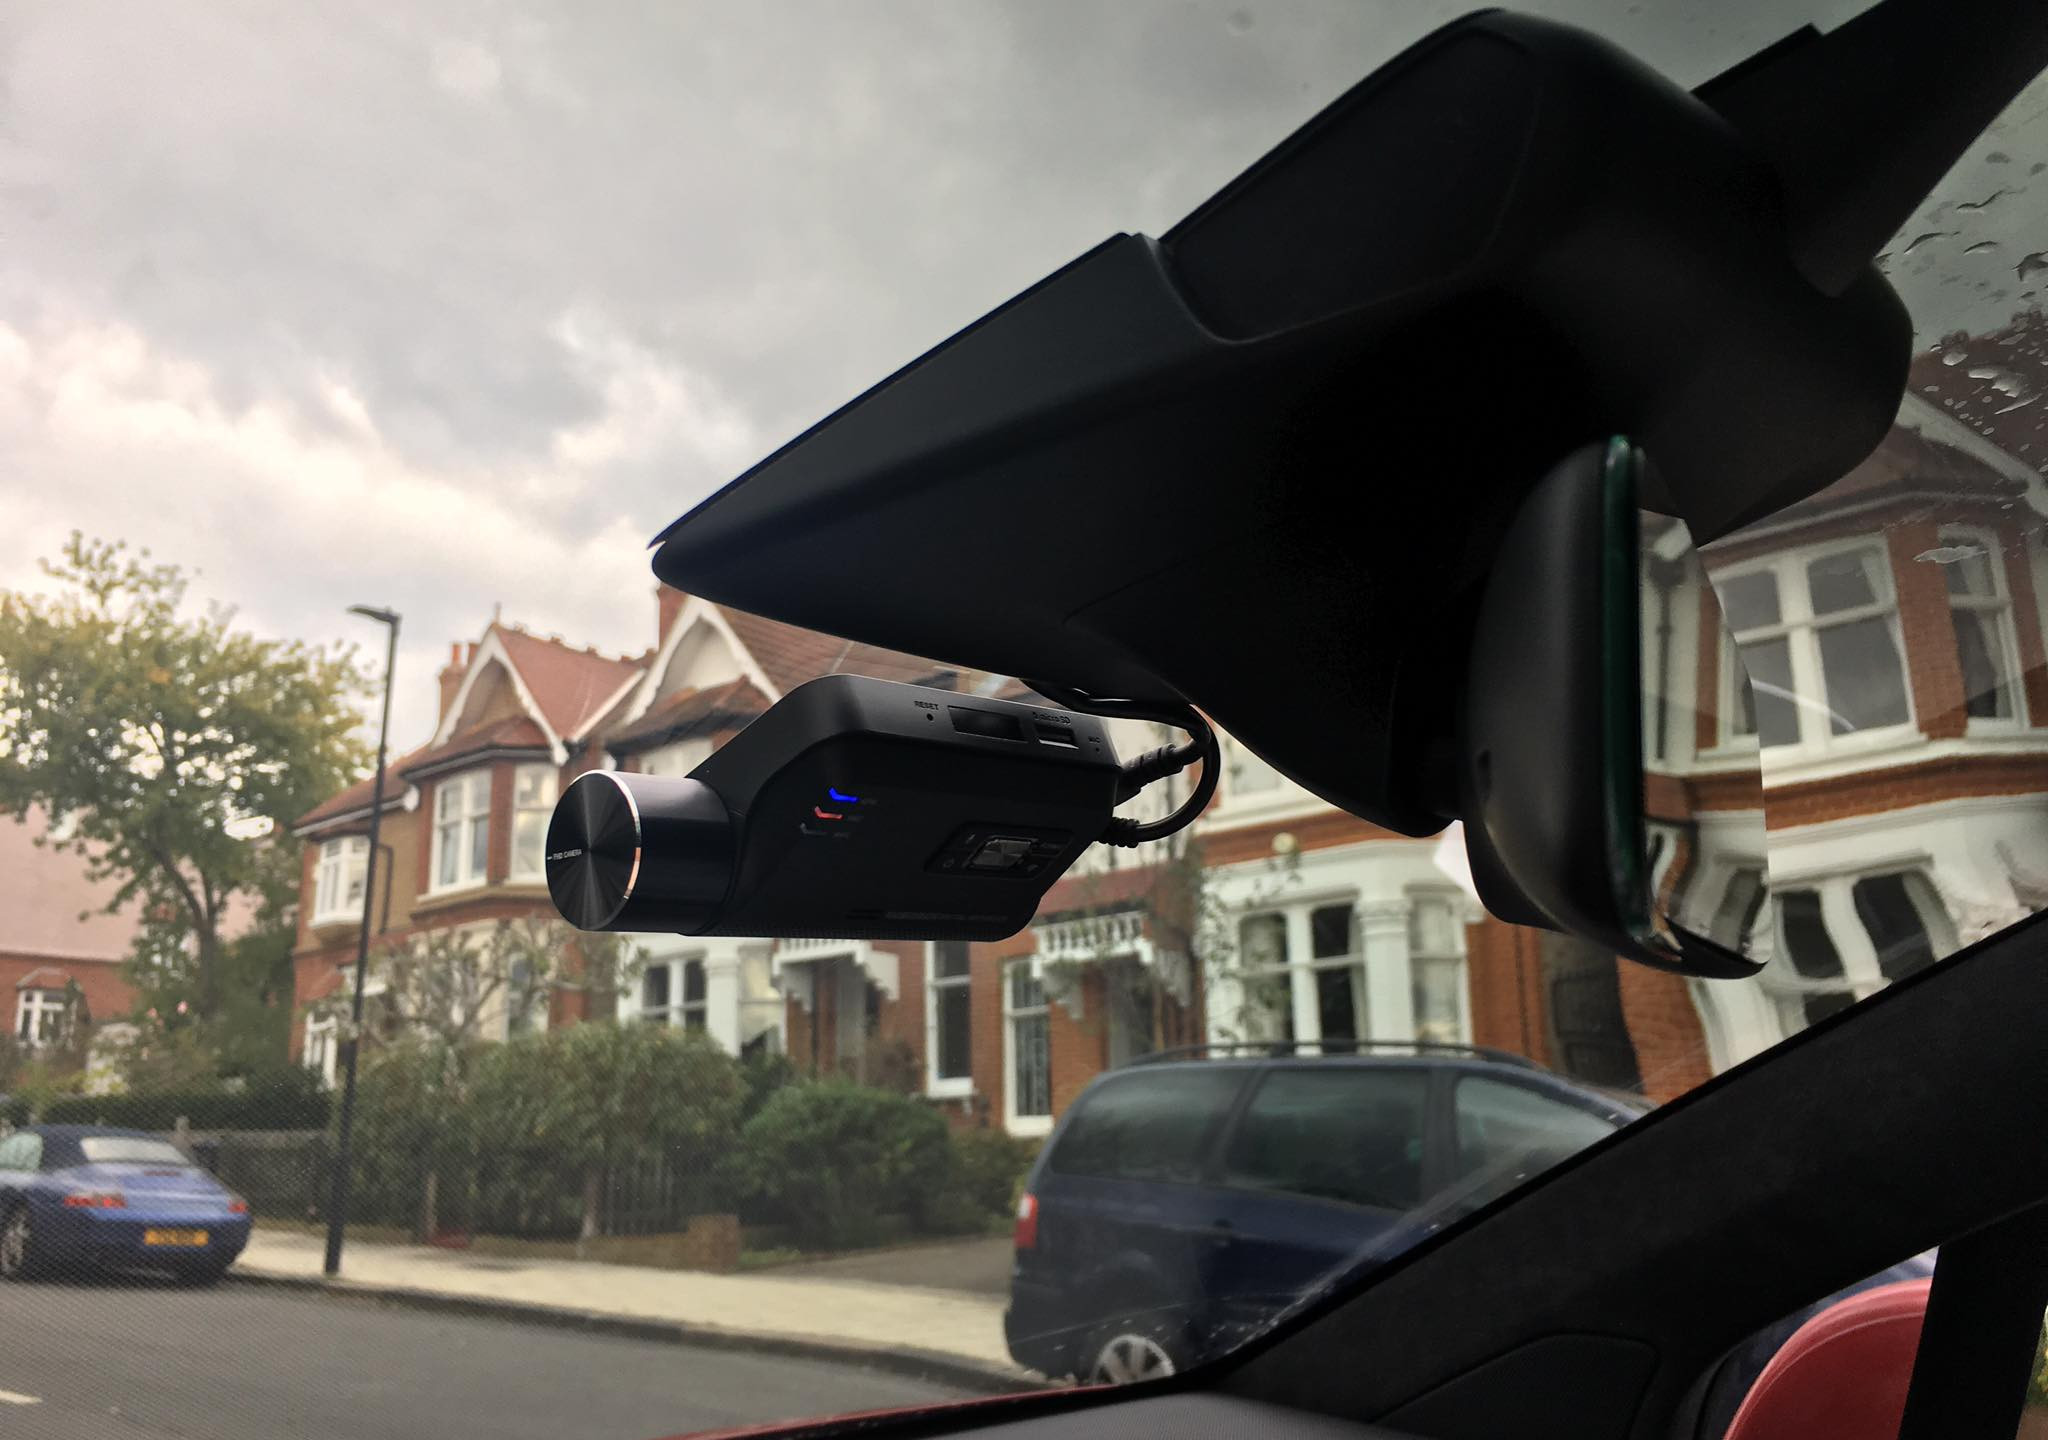 Other Dashcam with lower video quality bitrate recording. Thinkware F800